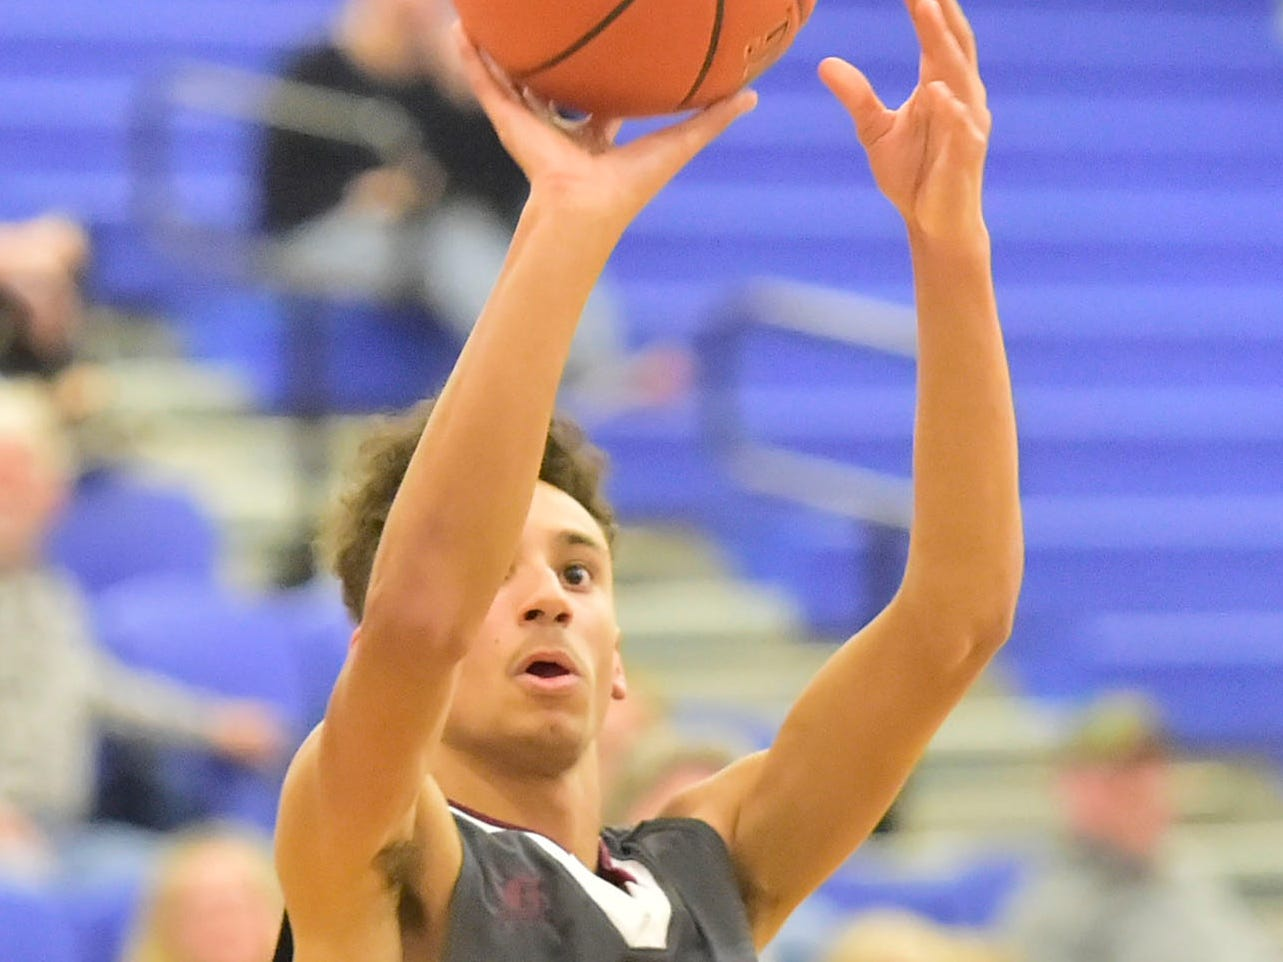 Shippensburg's Isaiah Houser shoots on Tuesday, December 18, 2018. Waynesboro defeated Shippensburg 72-59 during a home game.